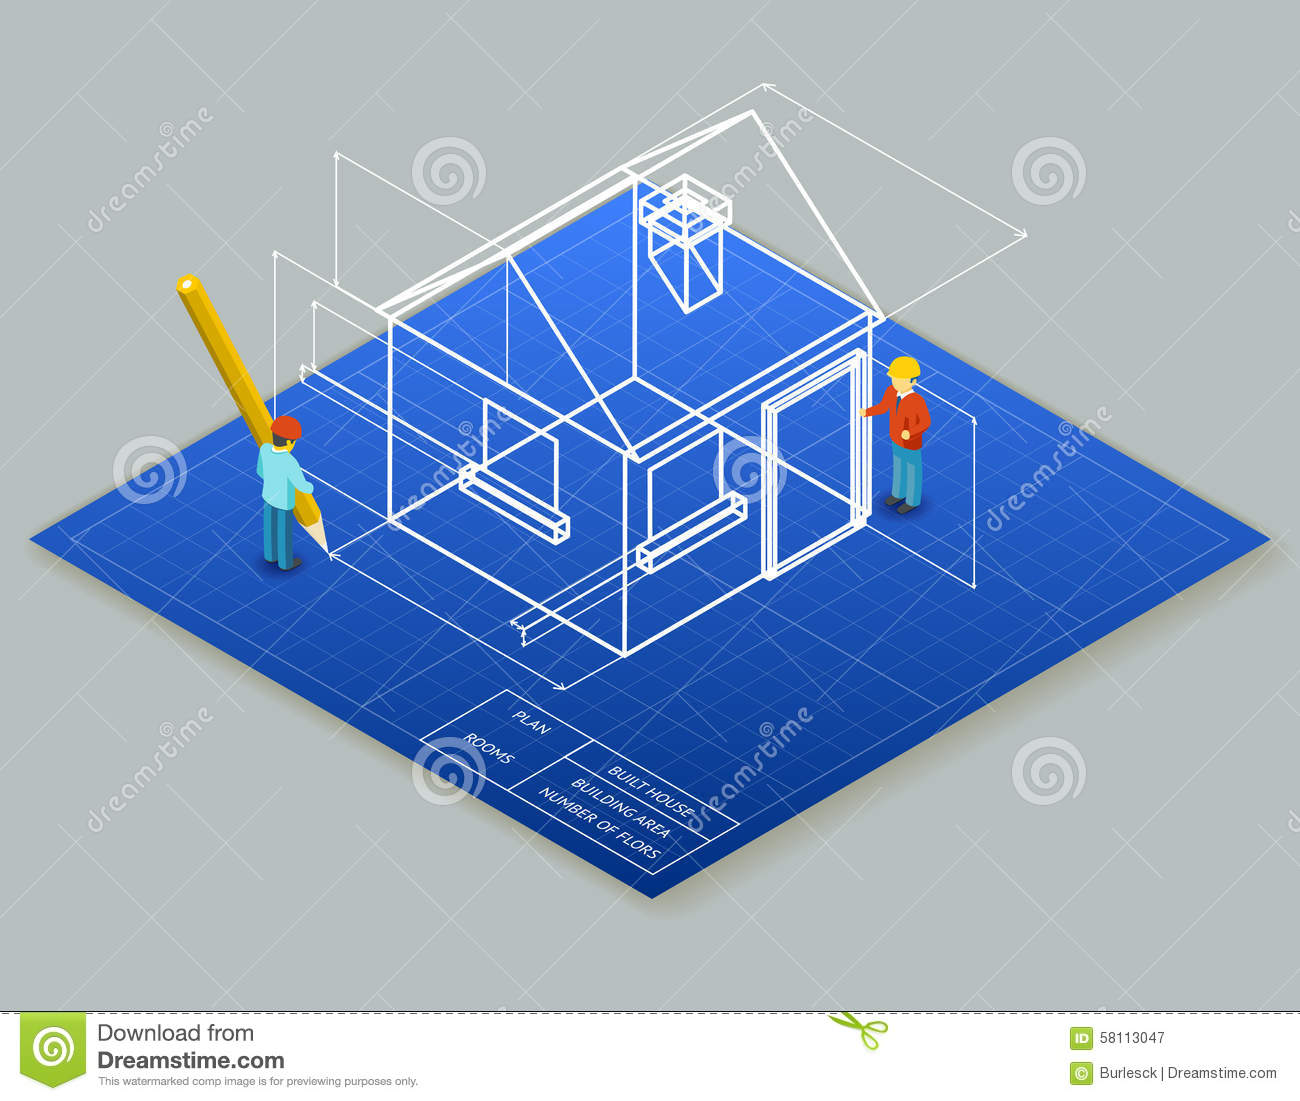 architectural design blueprint drawing isometric illustration plans sale tiny house plan sale vermont architect robert